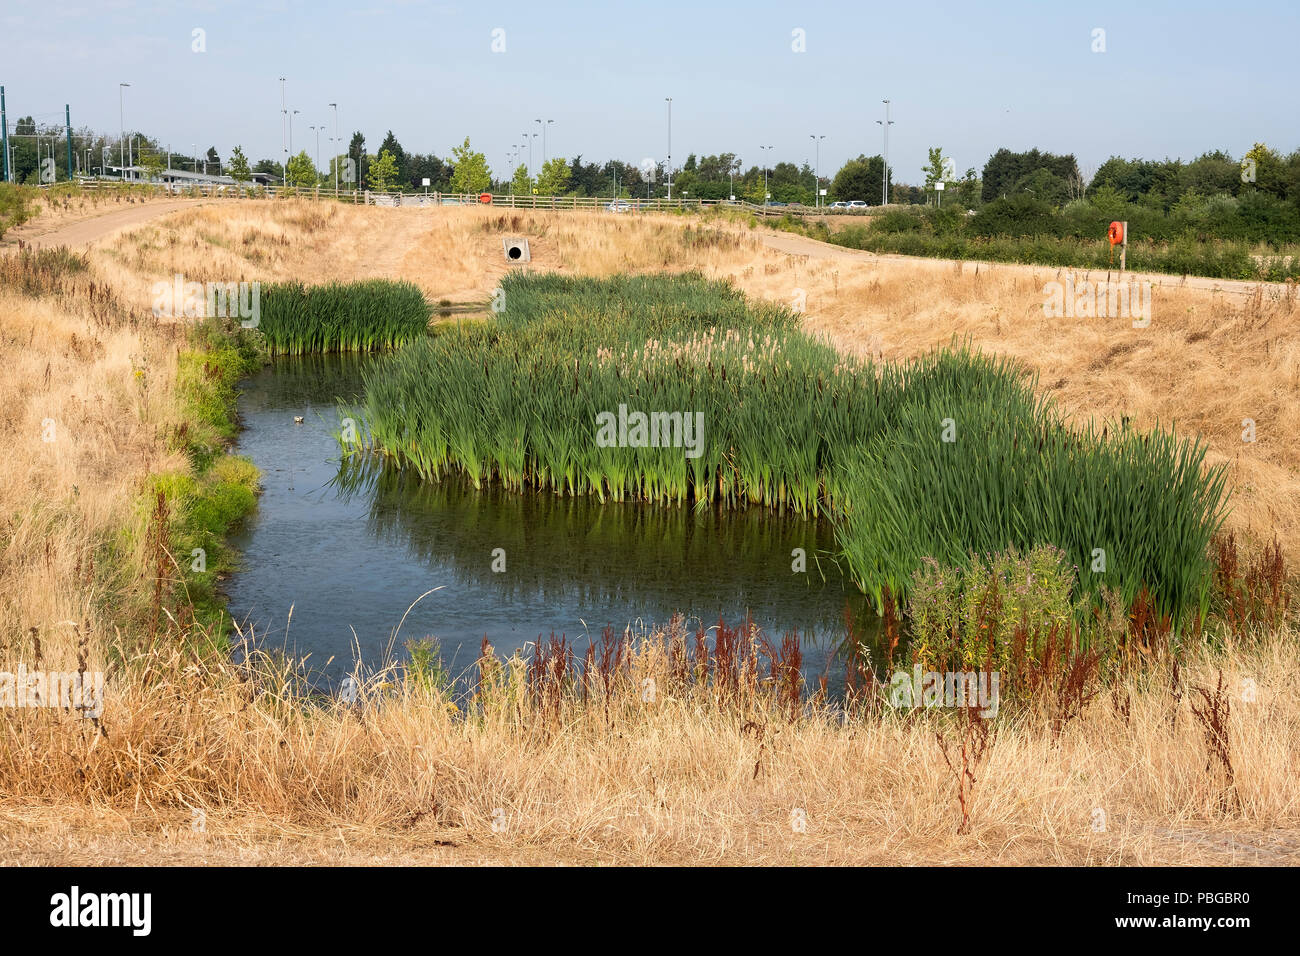 Oasis habitat in danger of drying out during the UK summer heatwave 2018 - Stock Image